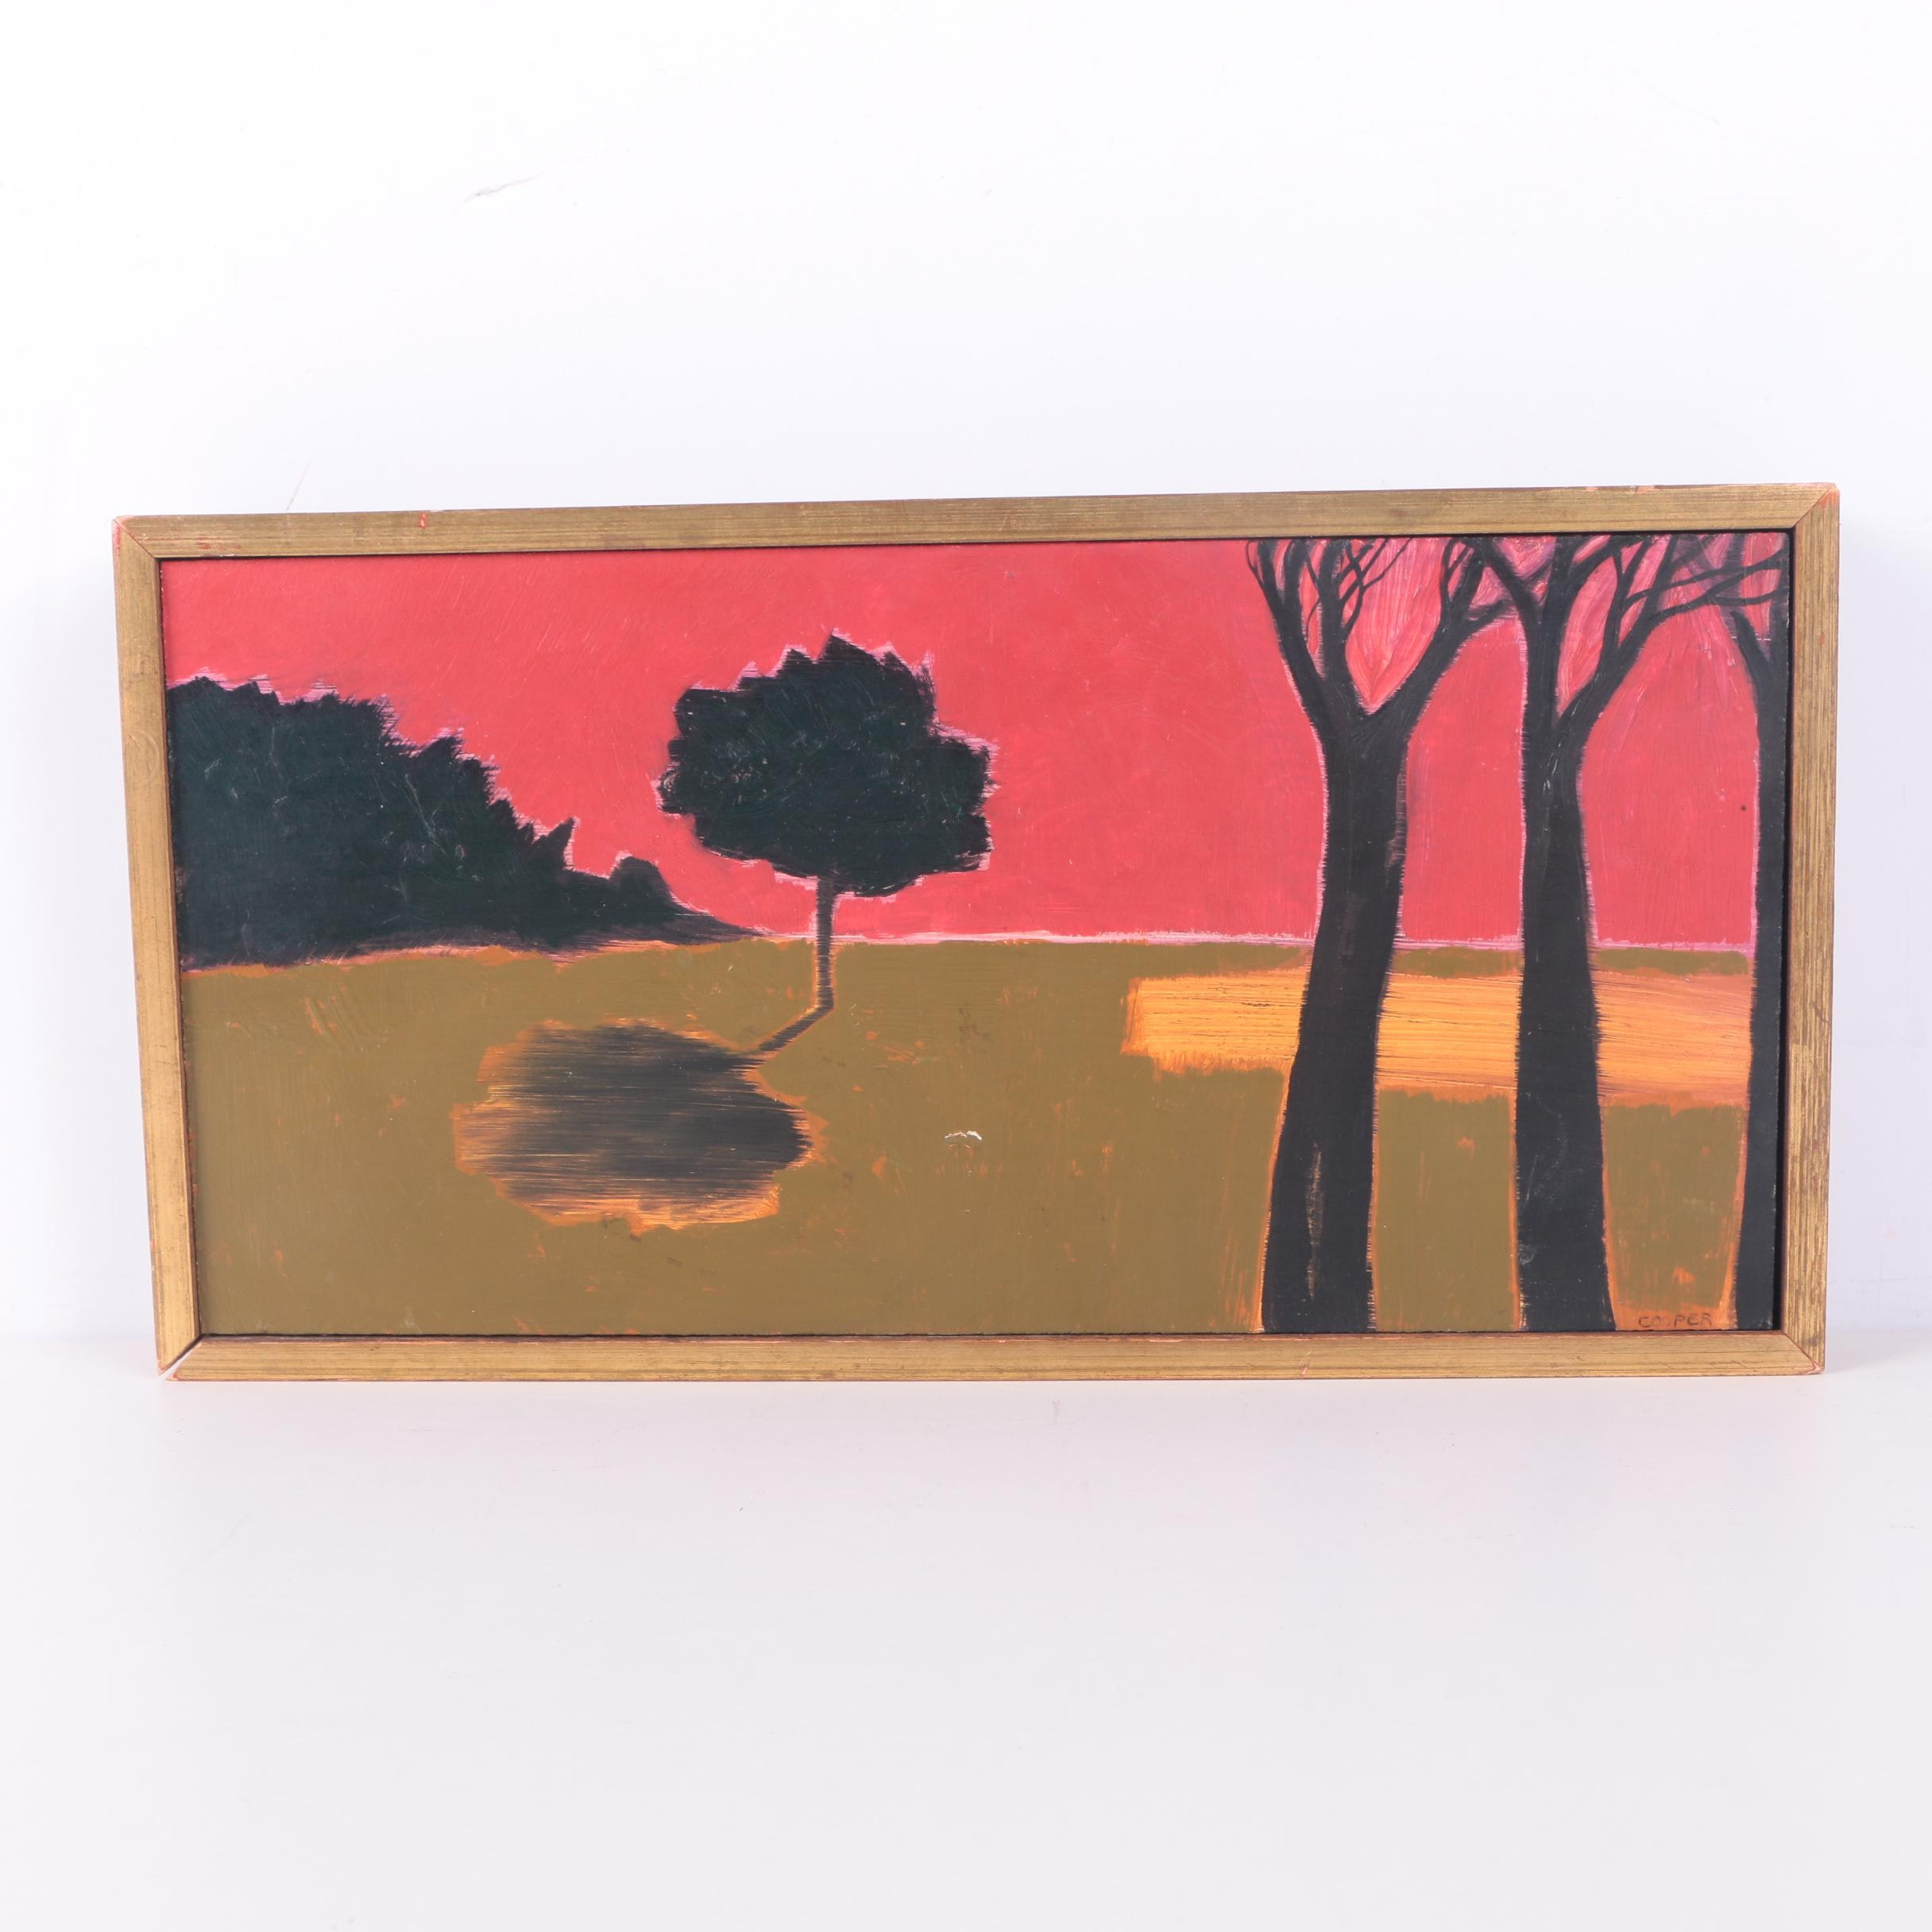 Oil Painting on Wood Panel of a Minimalistic Landscape